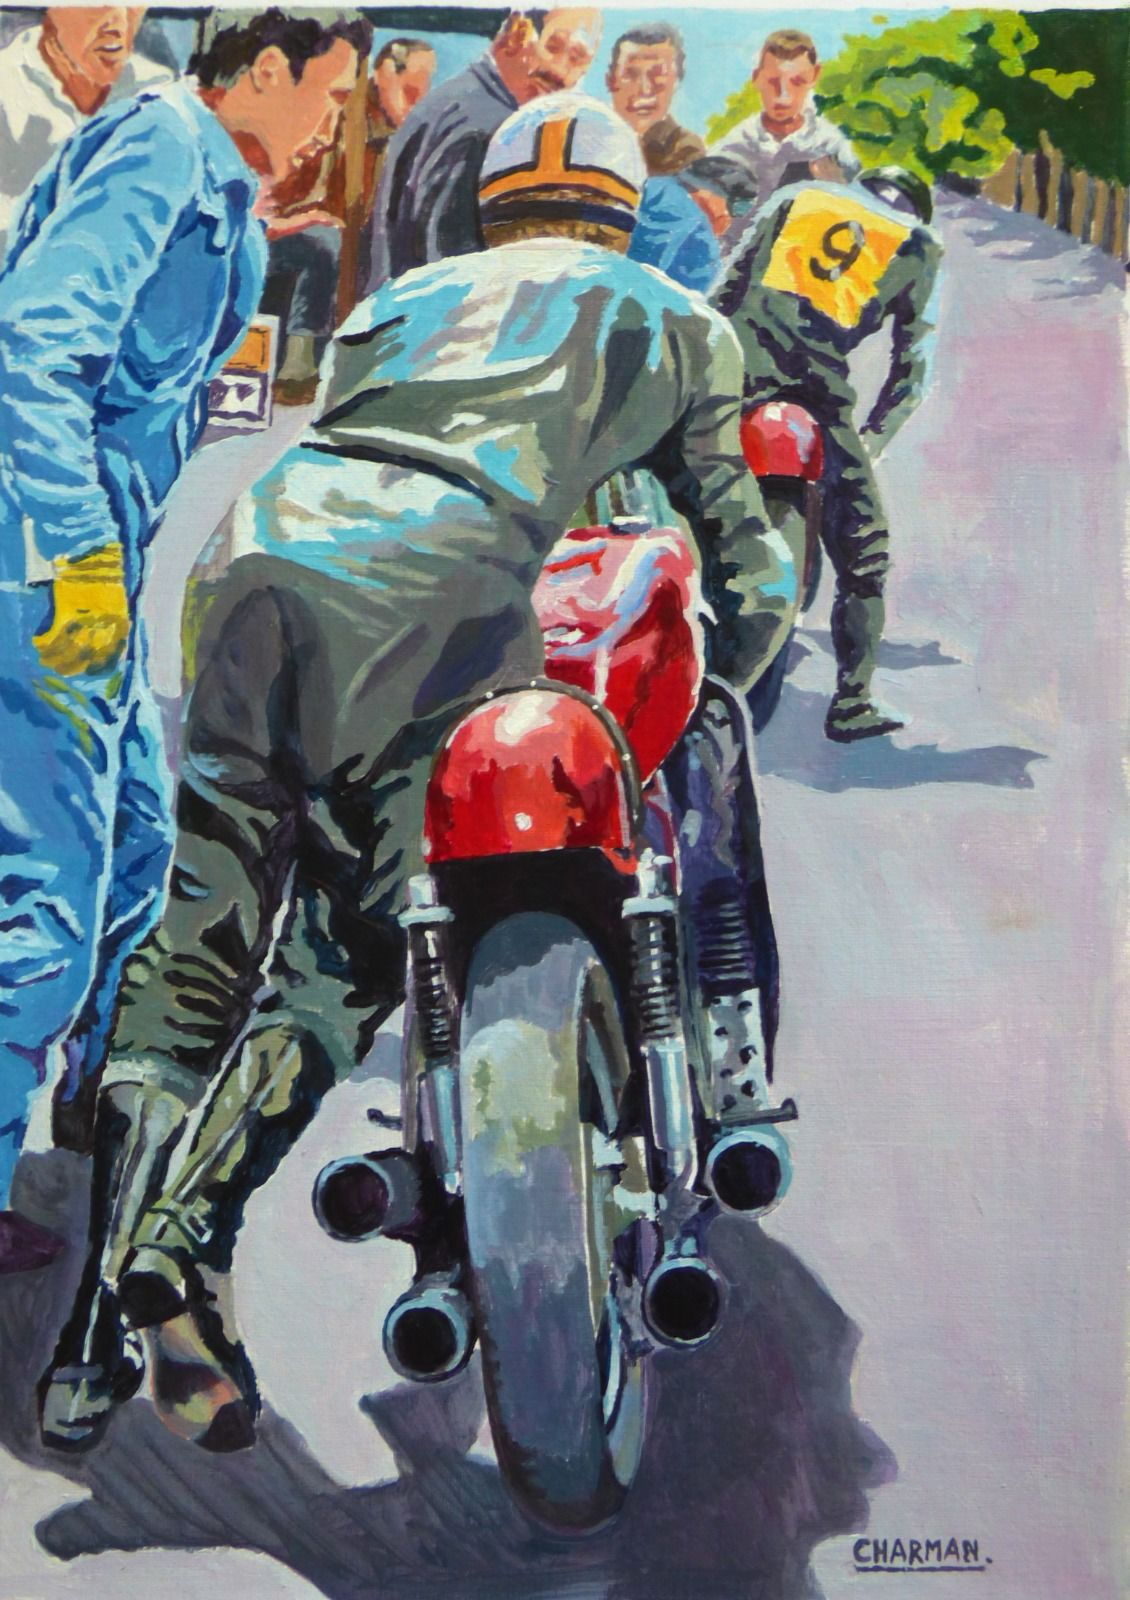 Hailwood and Ago pit stop